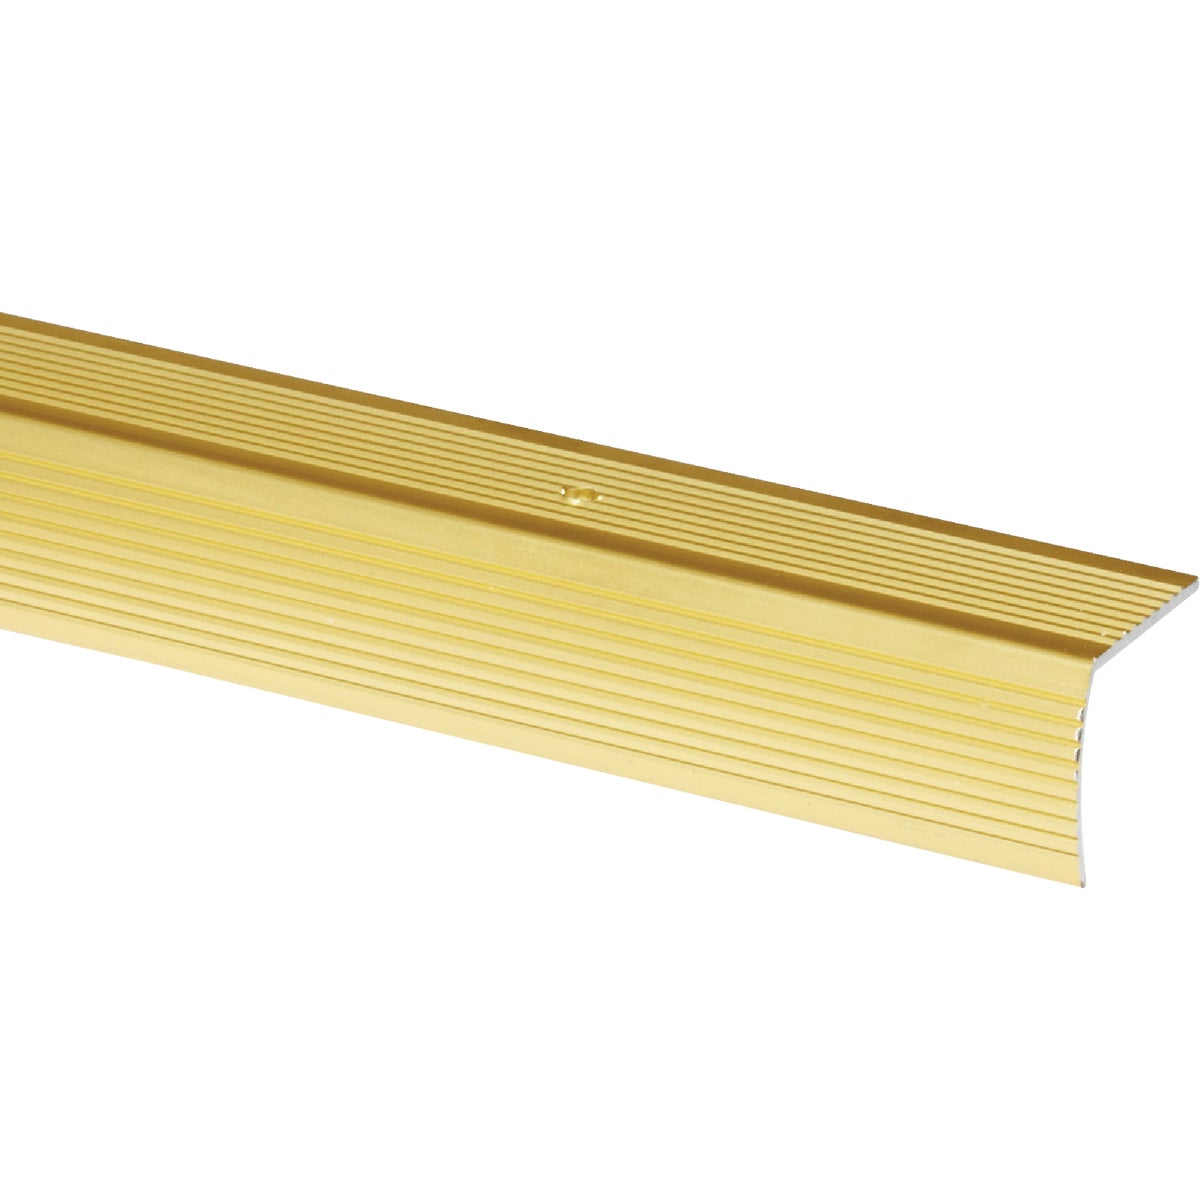 "1-1/8""X6' GOLD EDGING - H4128FB6DI by Thermwell Prods Co"